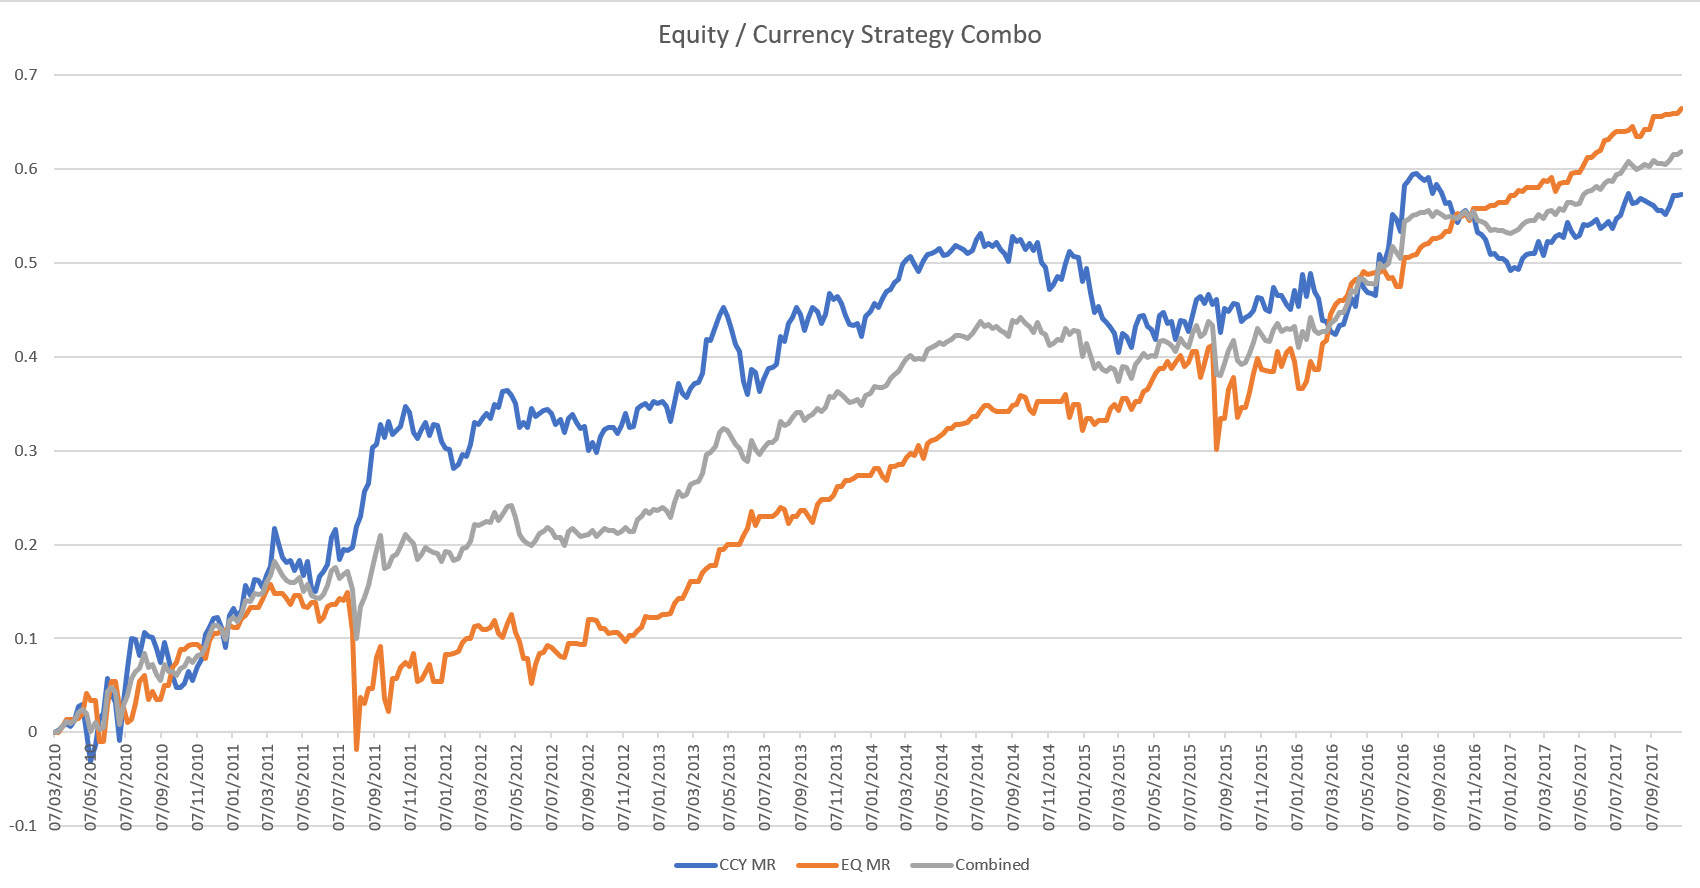 Currency and Equity Mean Reversion Combo